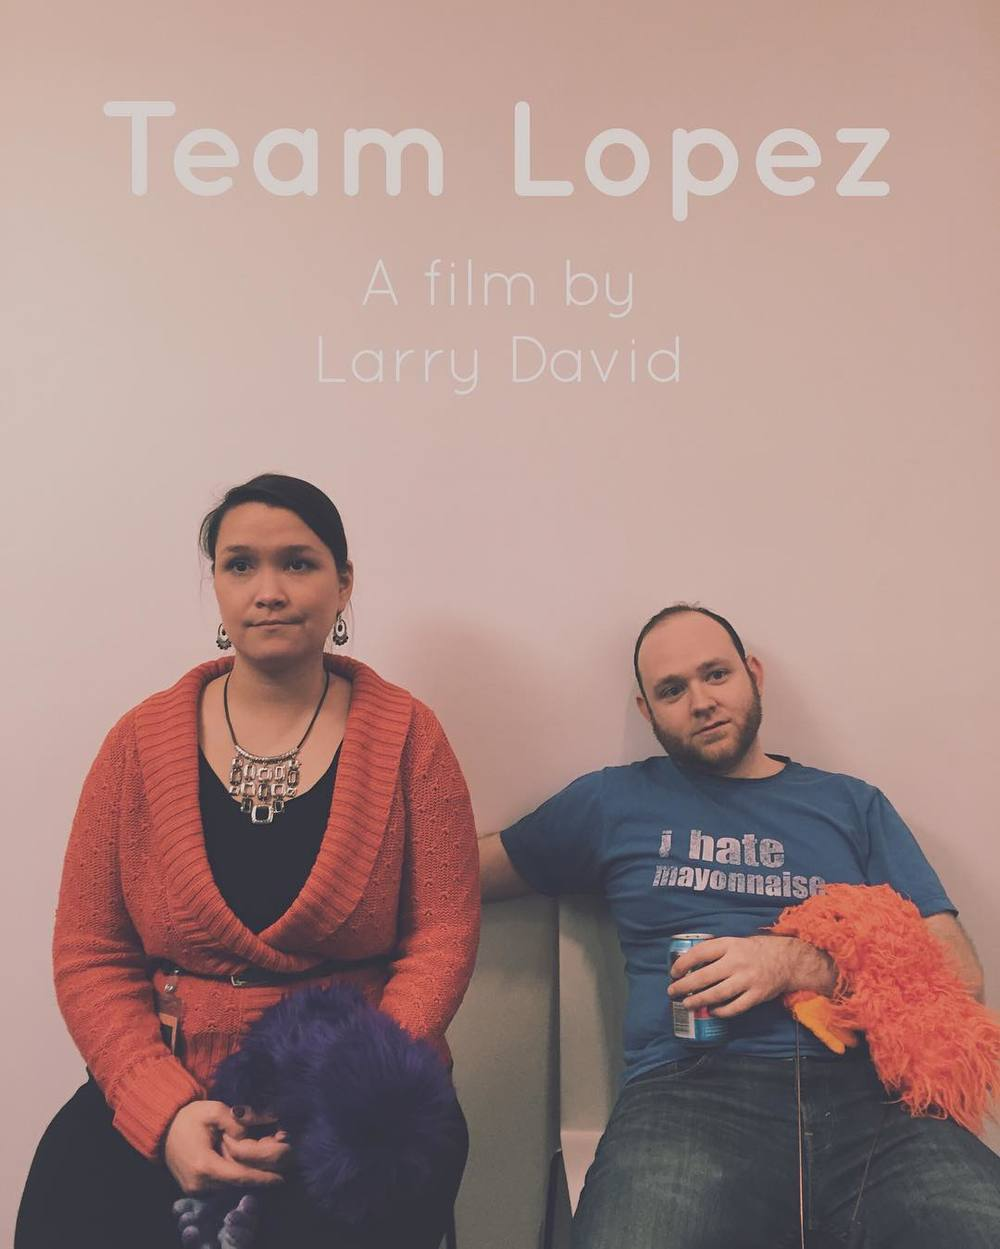 I would go see this movie. Multiple times. #puppet #teamlopeznyc http://ift.tt/1nv8H4J